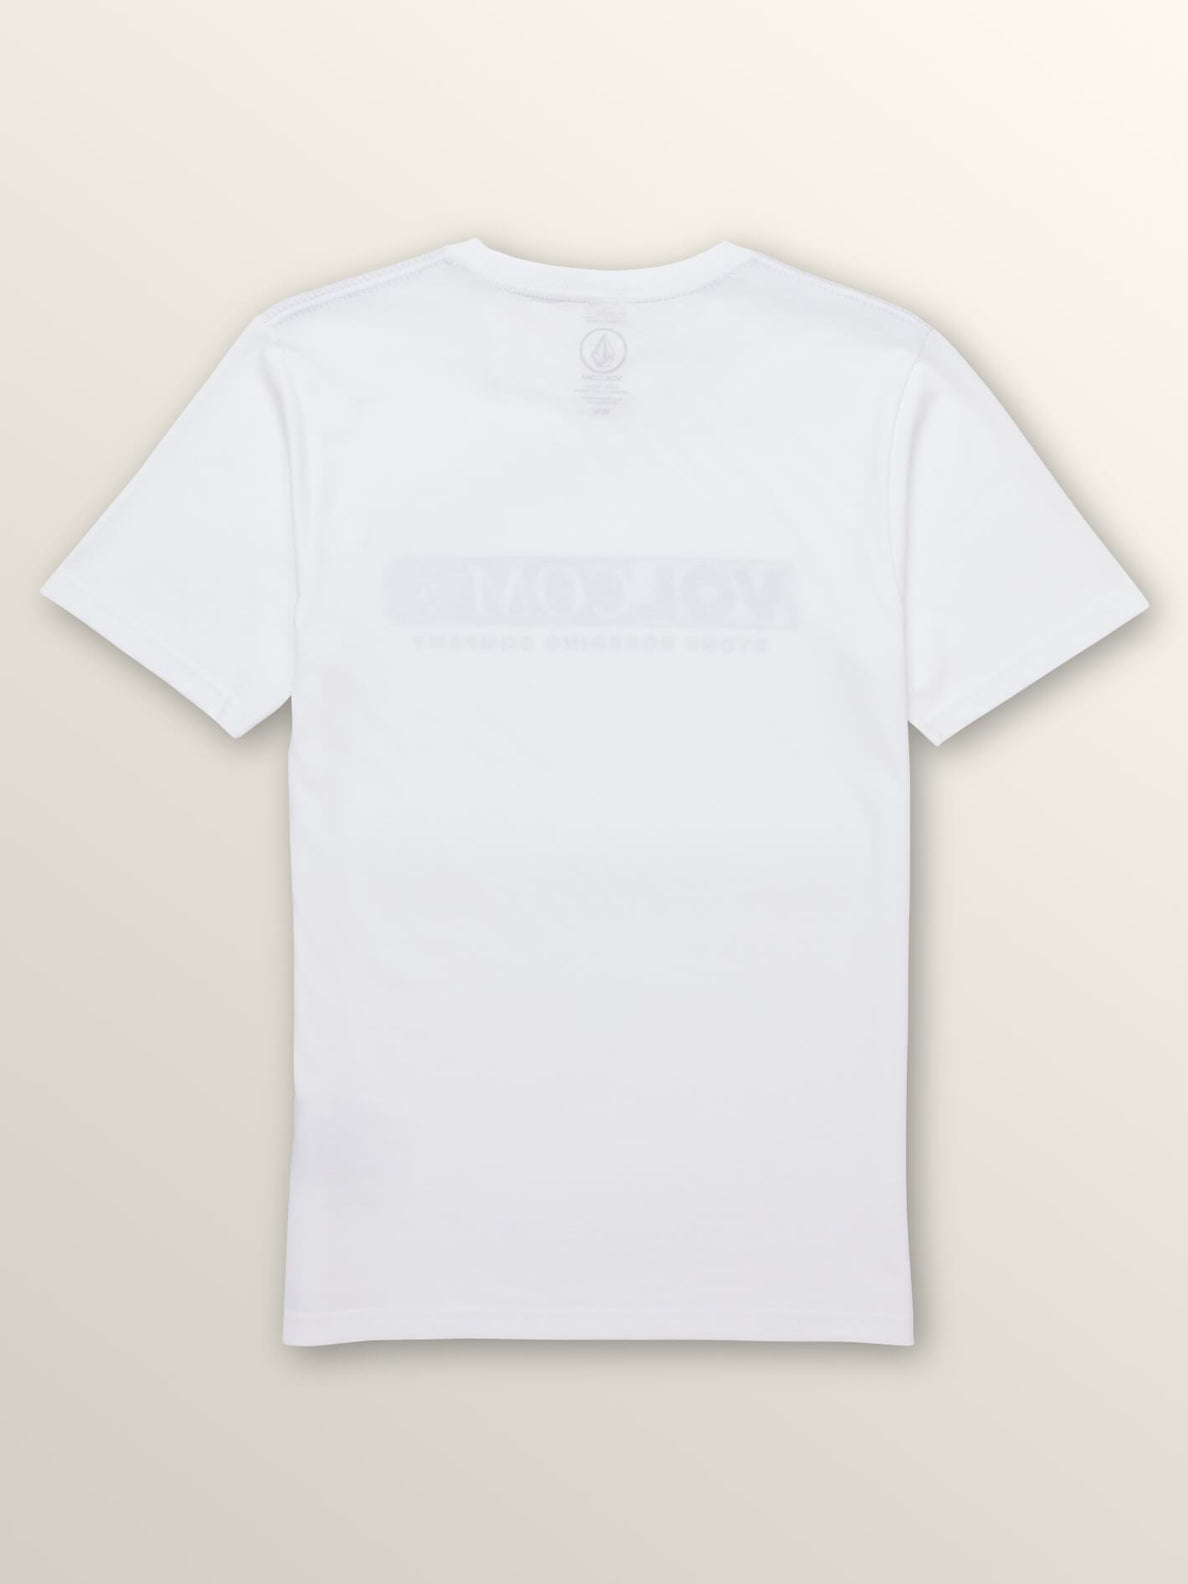 Big Boys Harsh Fade Short Sleeve Tee In White, Back View